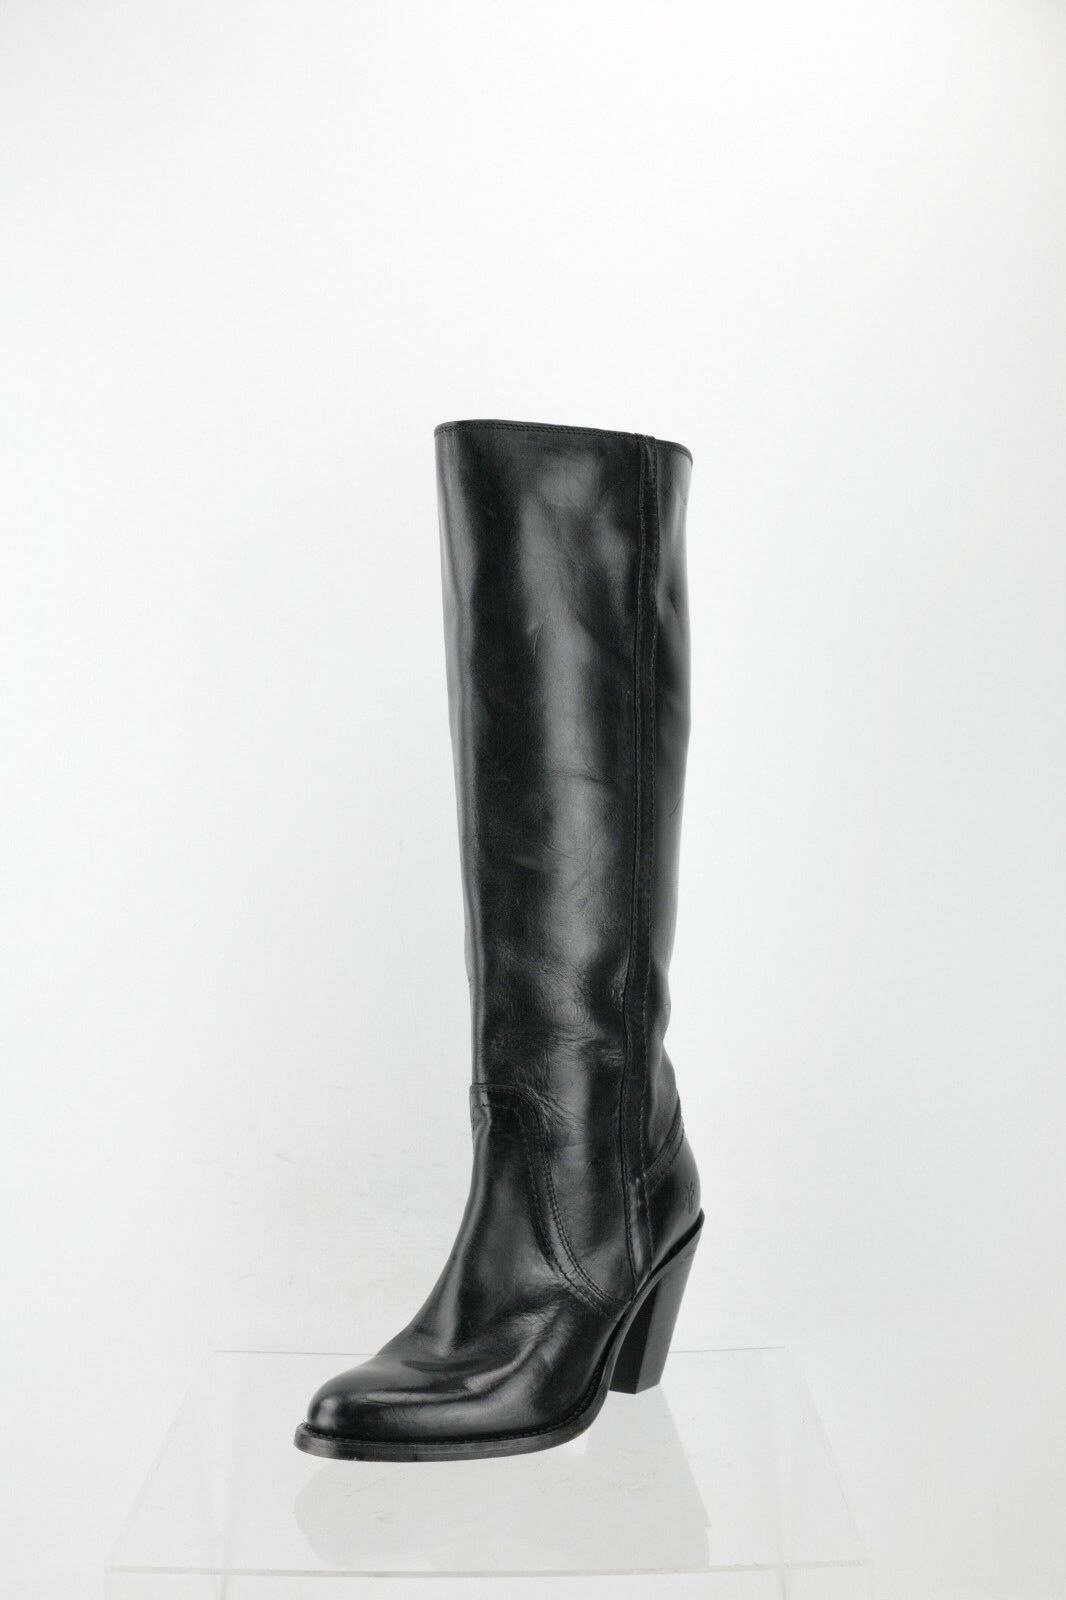 Frye 75161 Black Leather Knee High Boots Women's Shoes Size 6.5 M NEW RTL $590